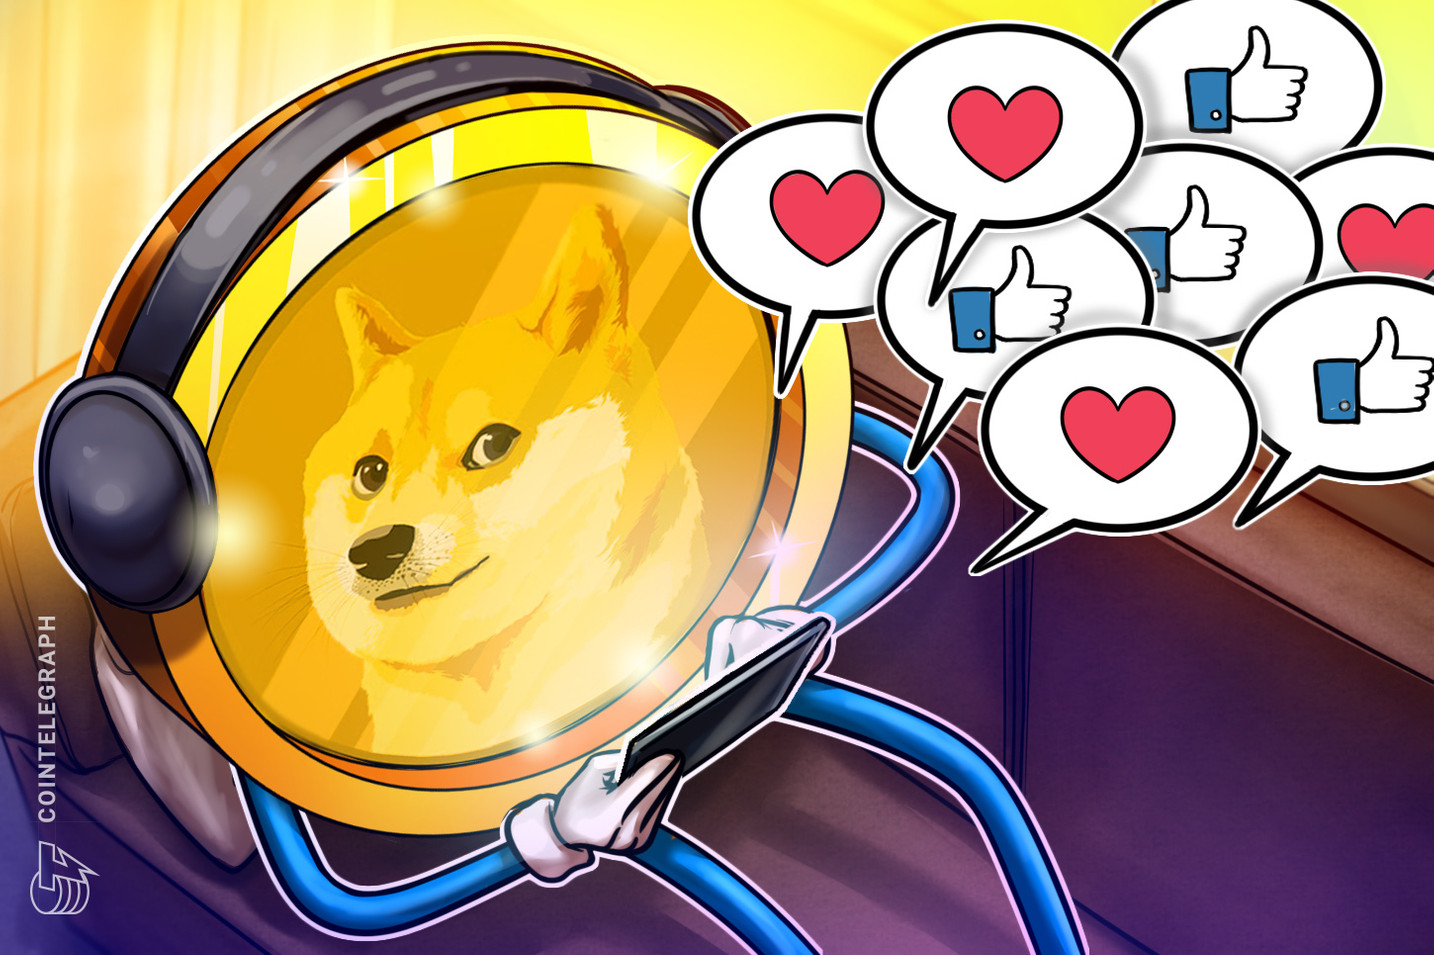 People seem to have forgotten that Dogecoin fans have always been lit